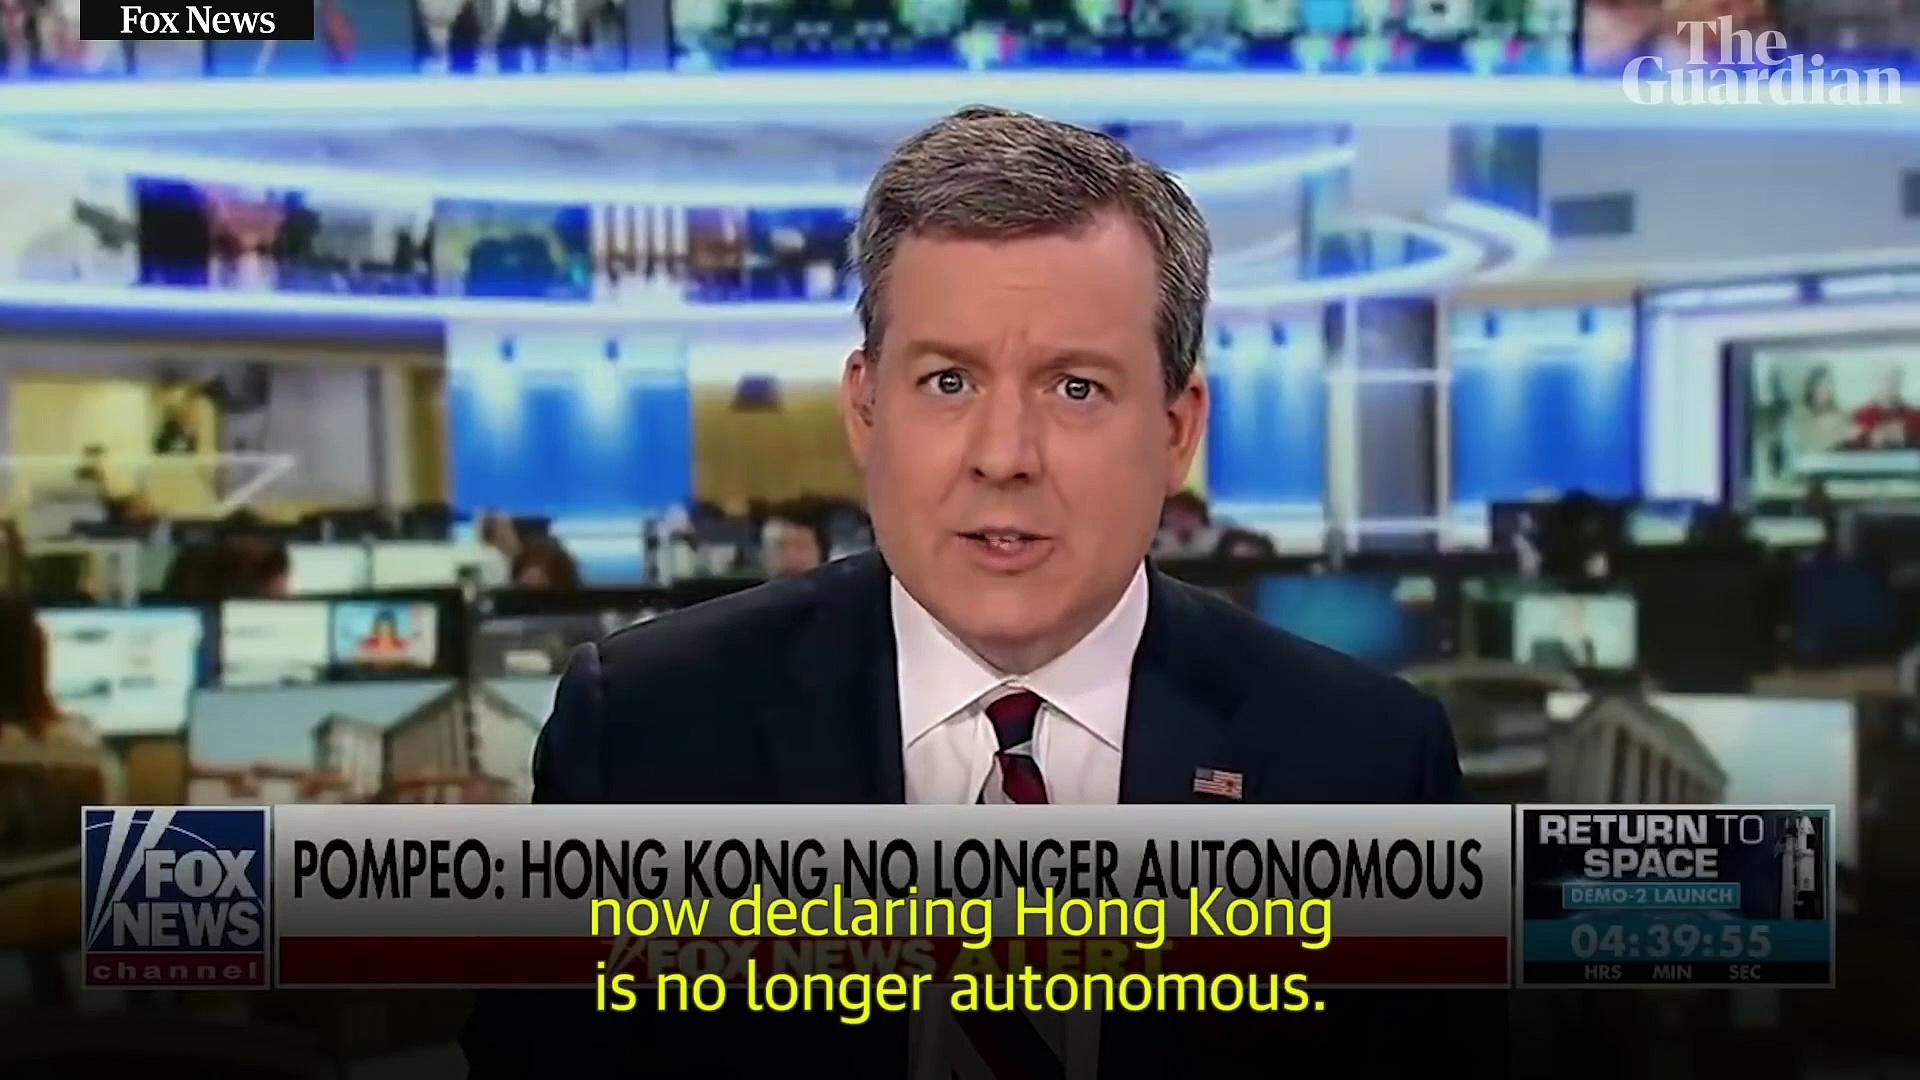 Is China pushing Hong Kong further away with its new security law? – video explainer